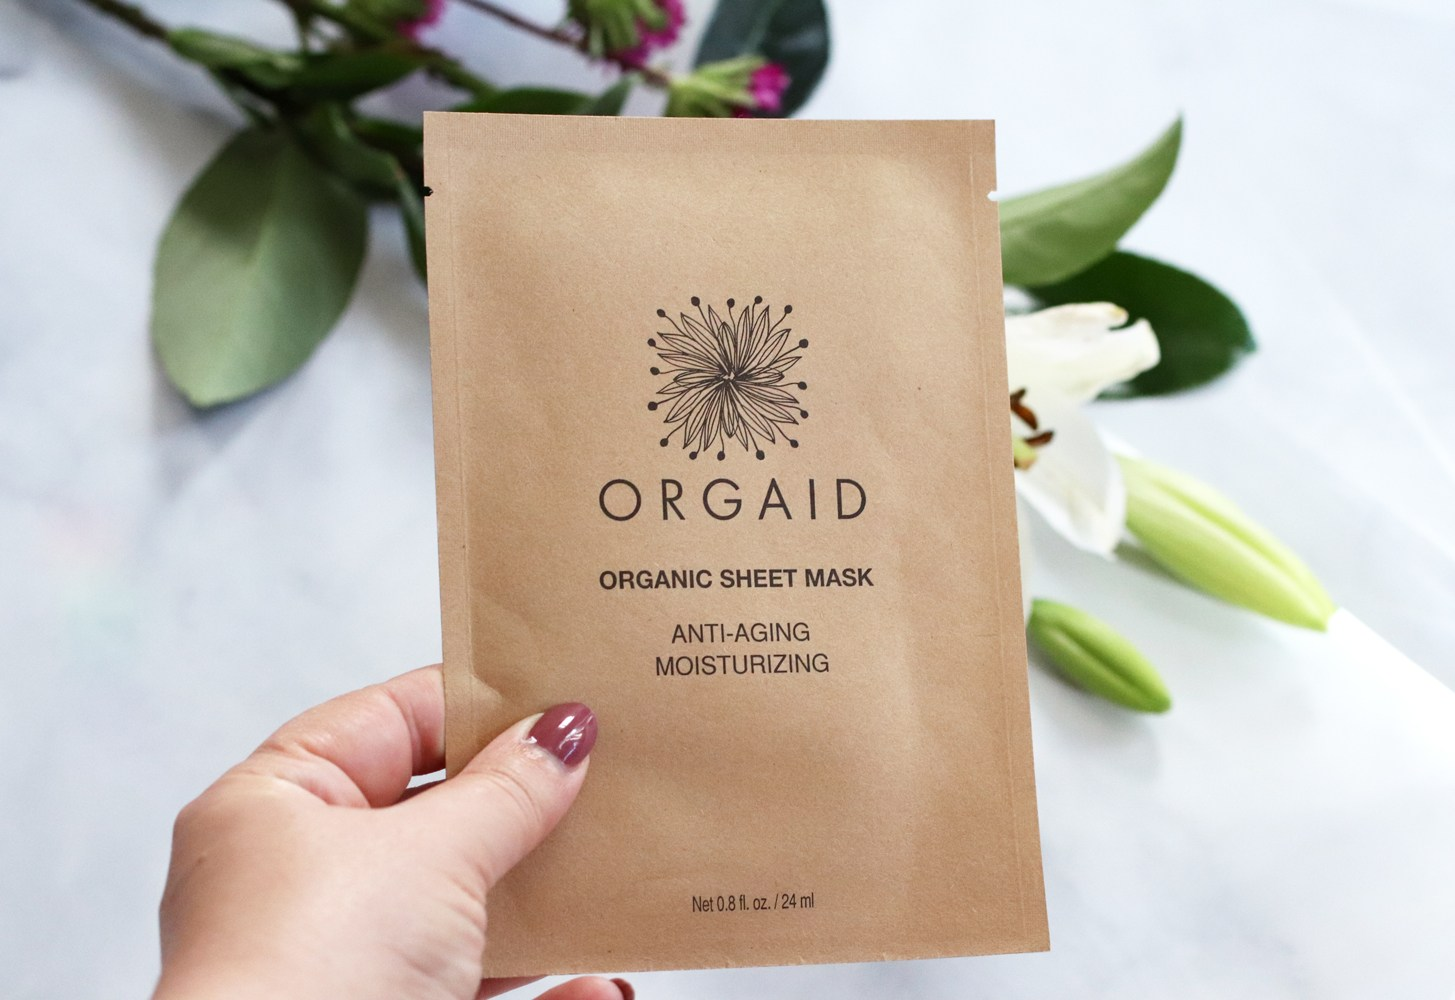 Clean beauty from Cynaglow - ORGAID organic sheet mask review